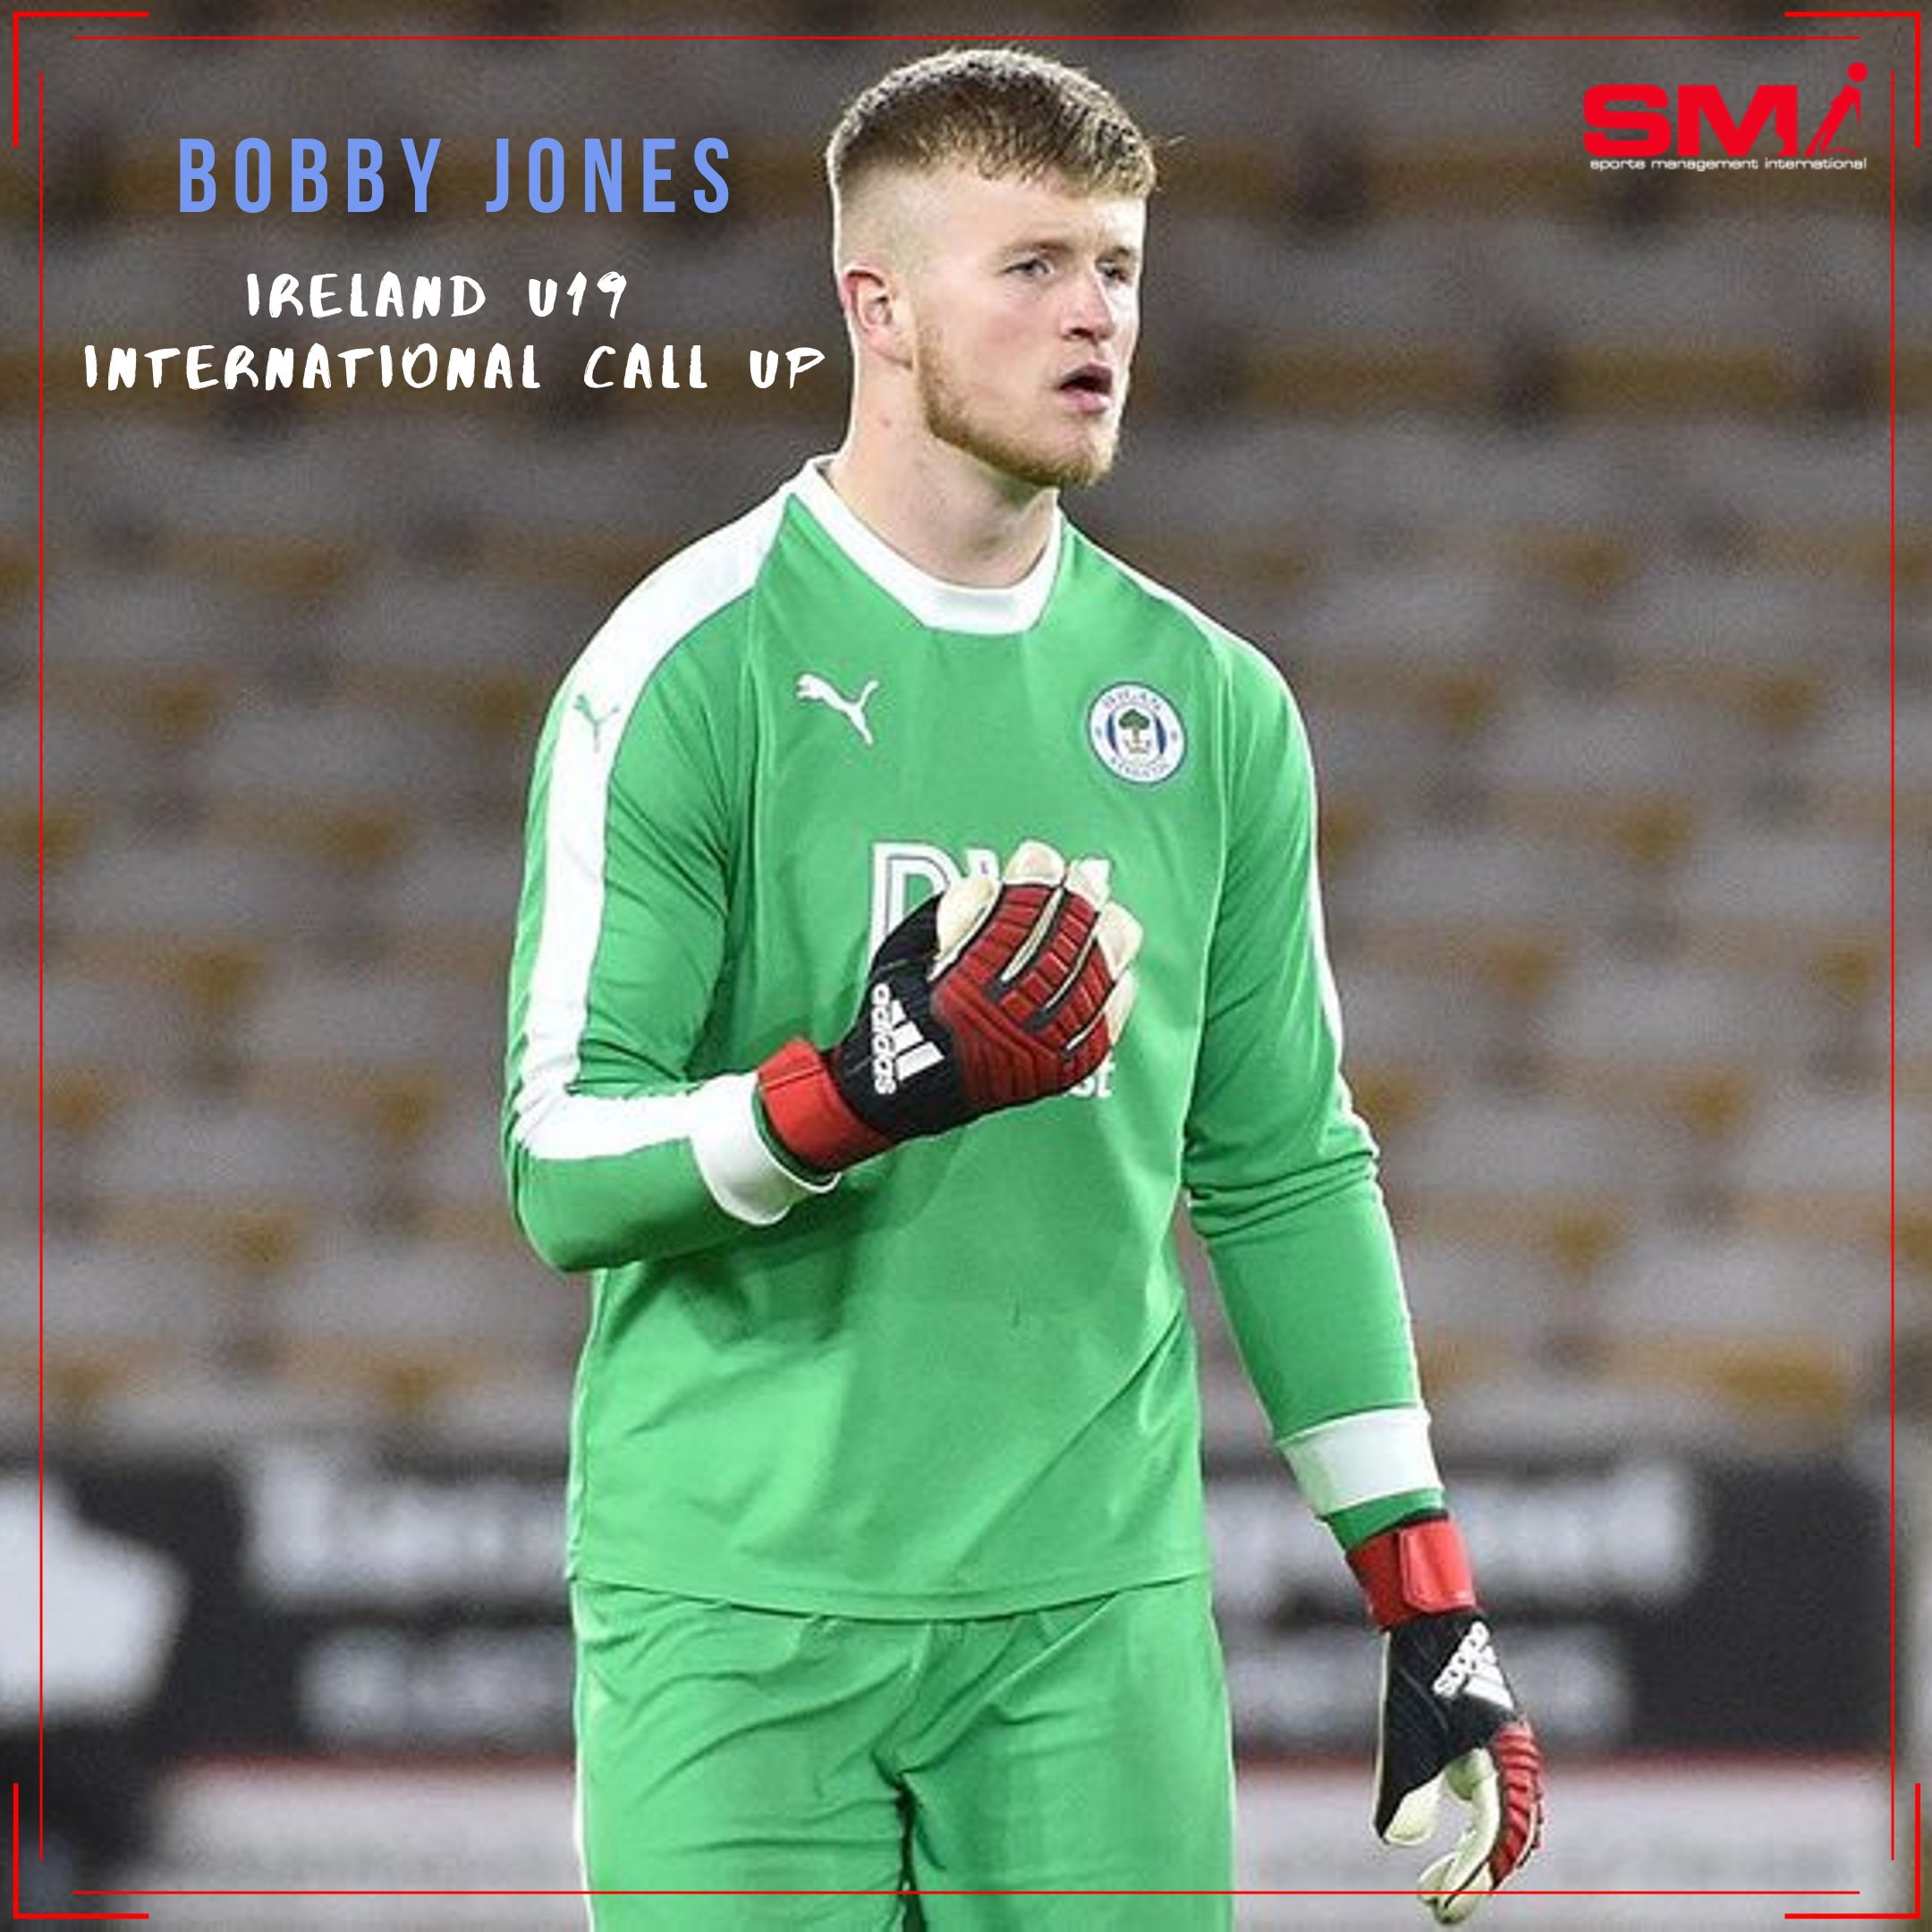 Bobby Jones Ireland u19 call up